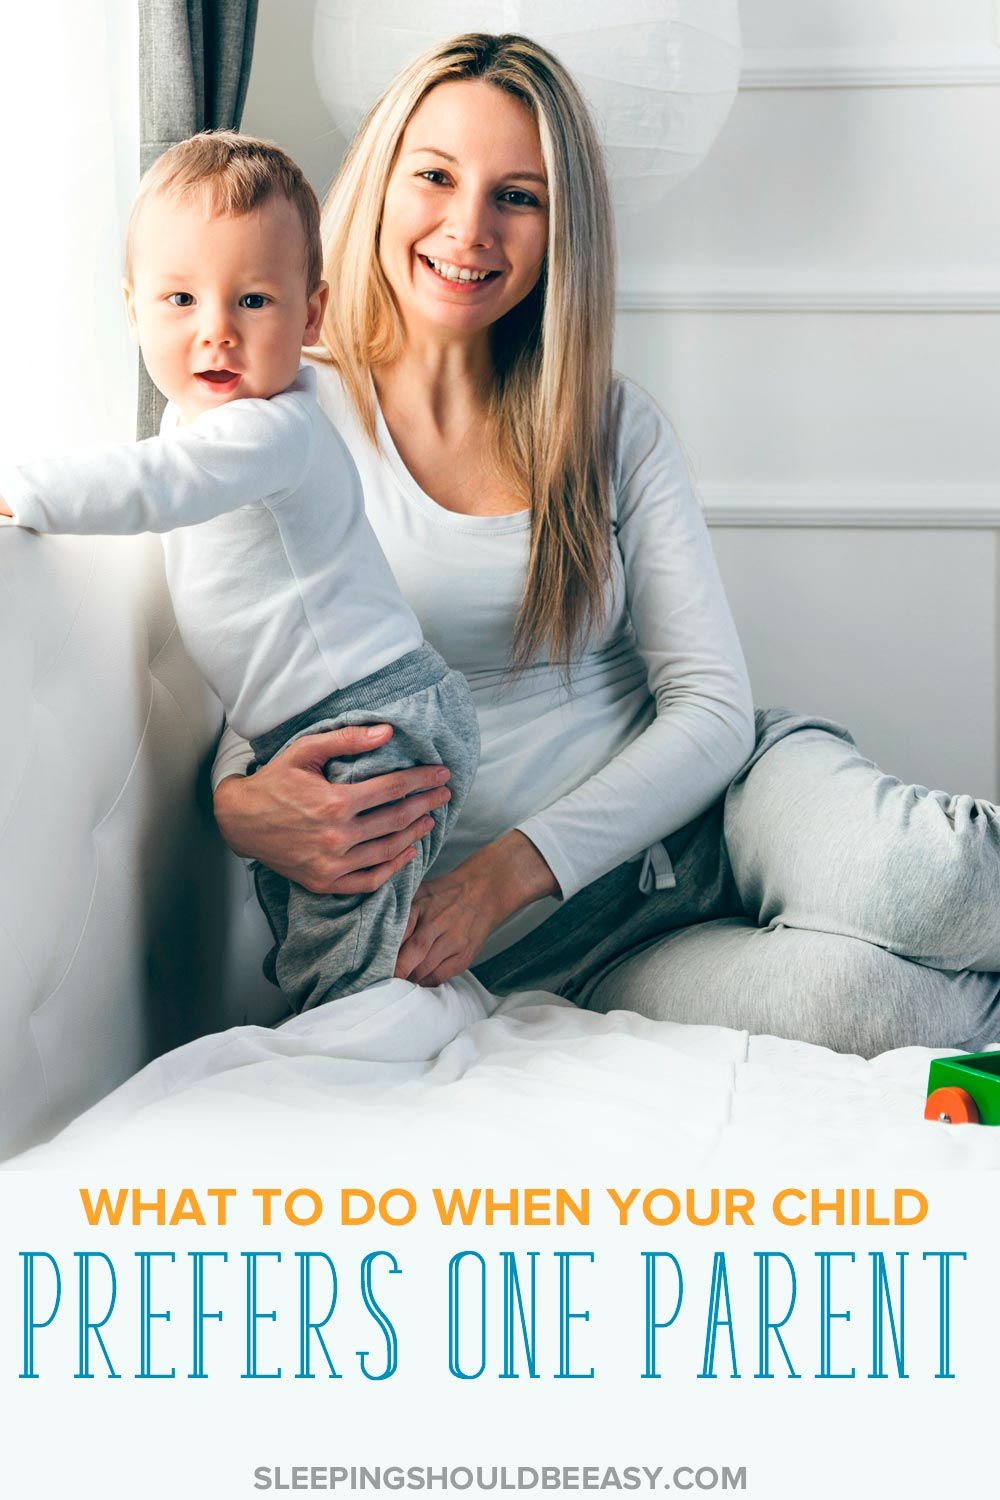 Struggling when your toddler prefers one parent over the other? Learn the best ways to help him cope with separation anxiety and take to both parents. Even includes a FREE 5-Day Better Parenting Email Challenge, where you'll tackle one parenting tip per day you can implement right away!